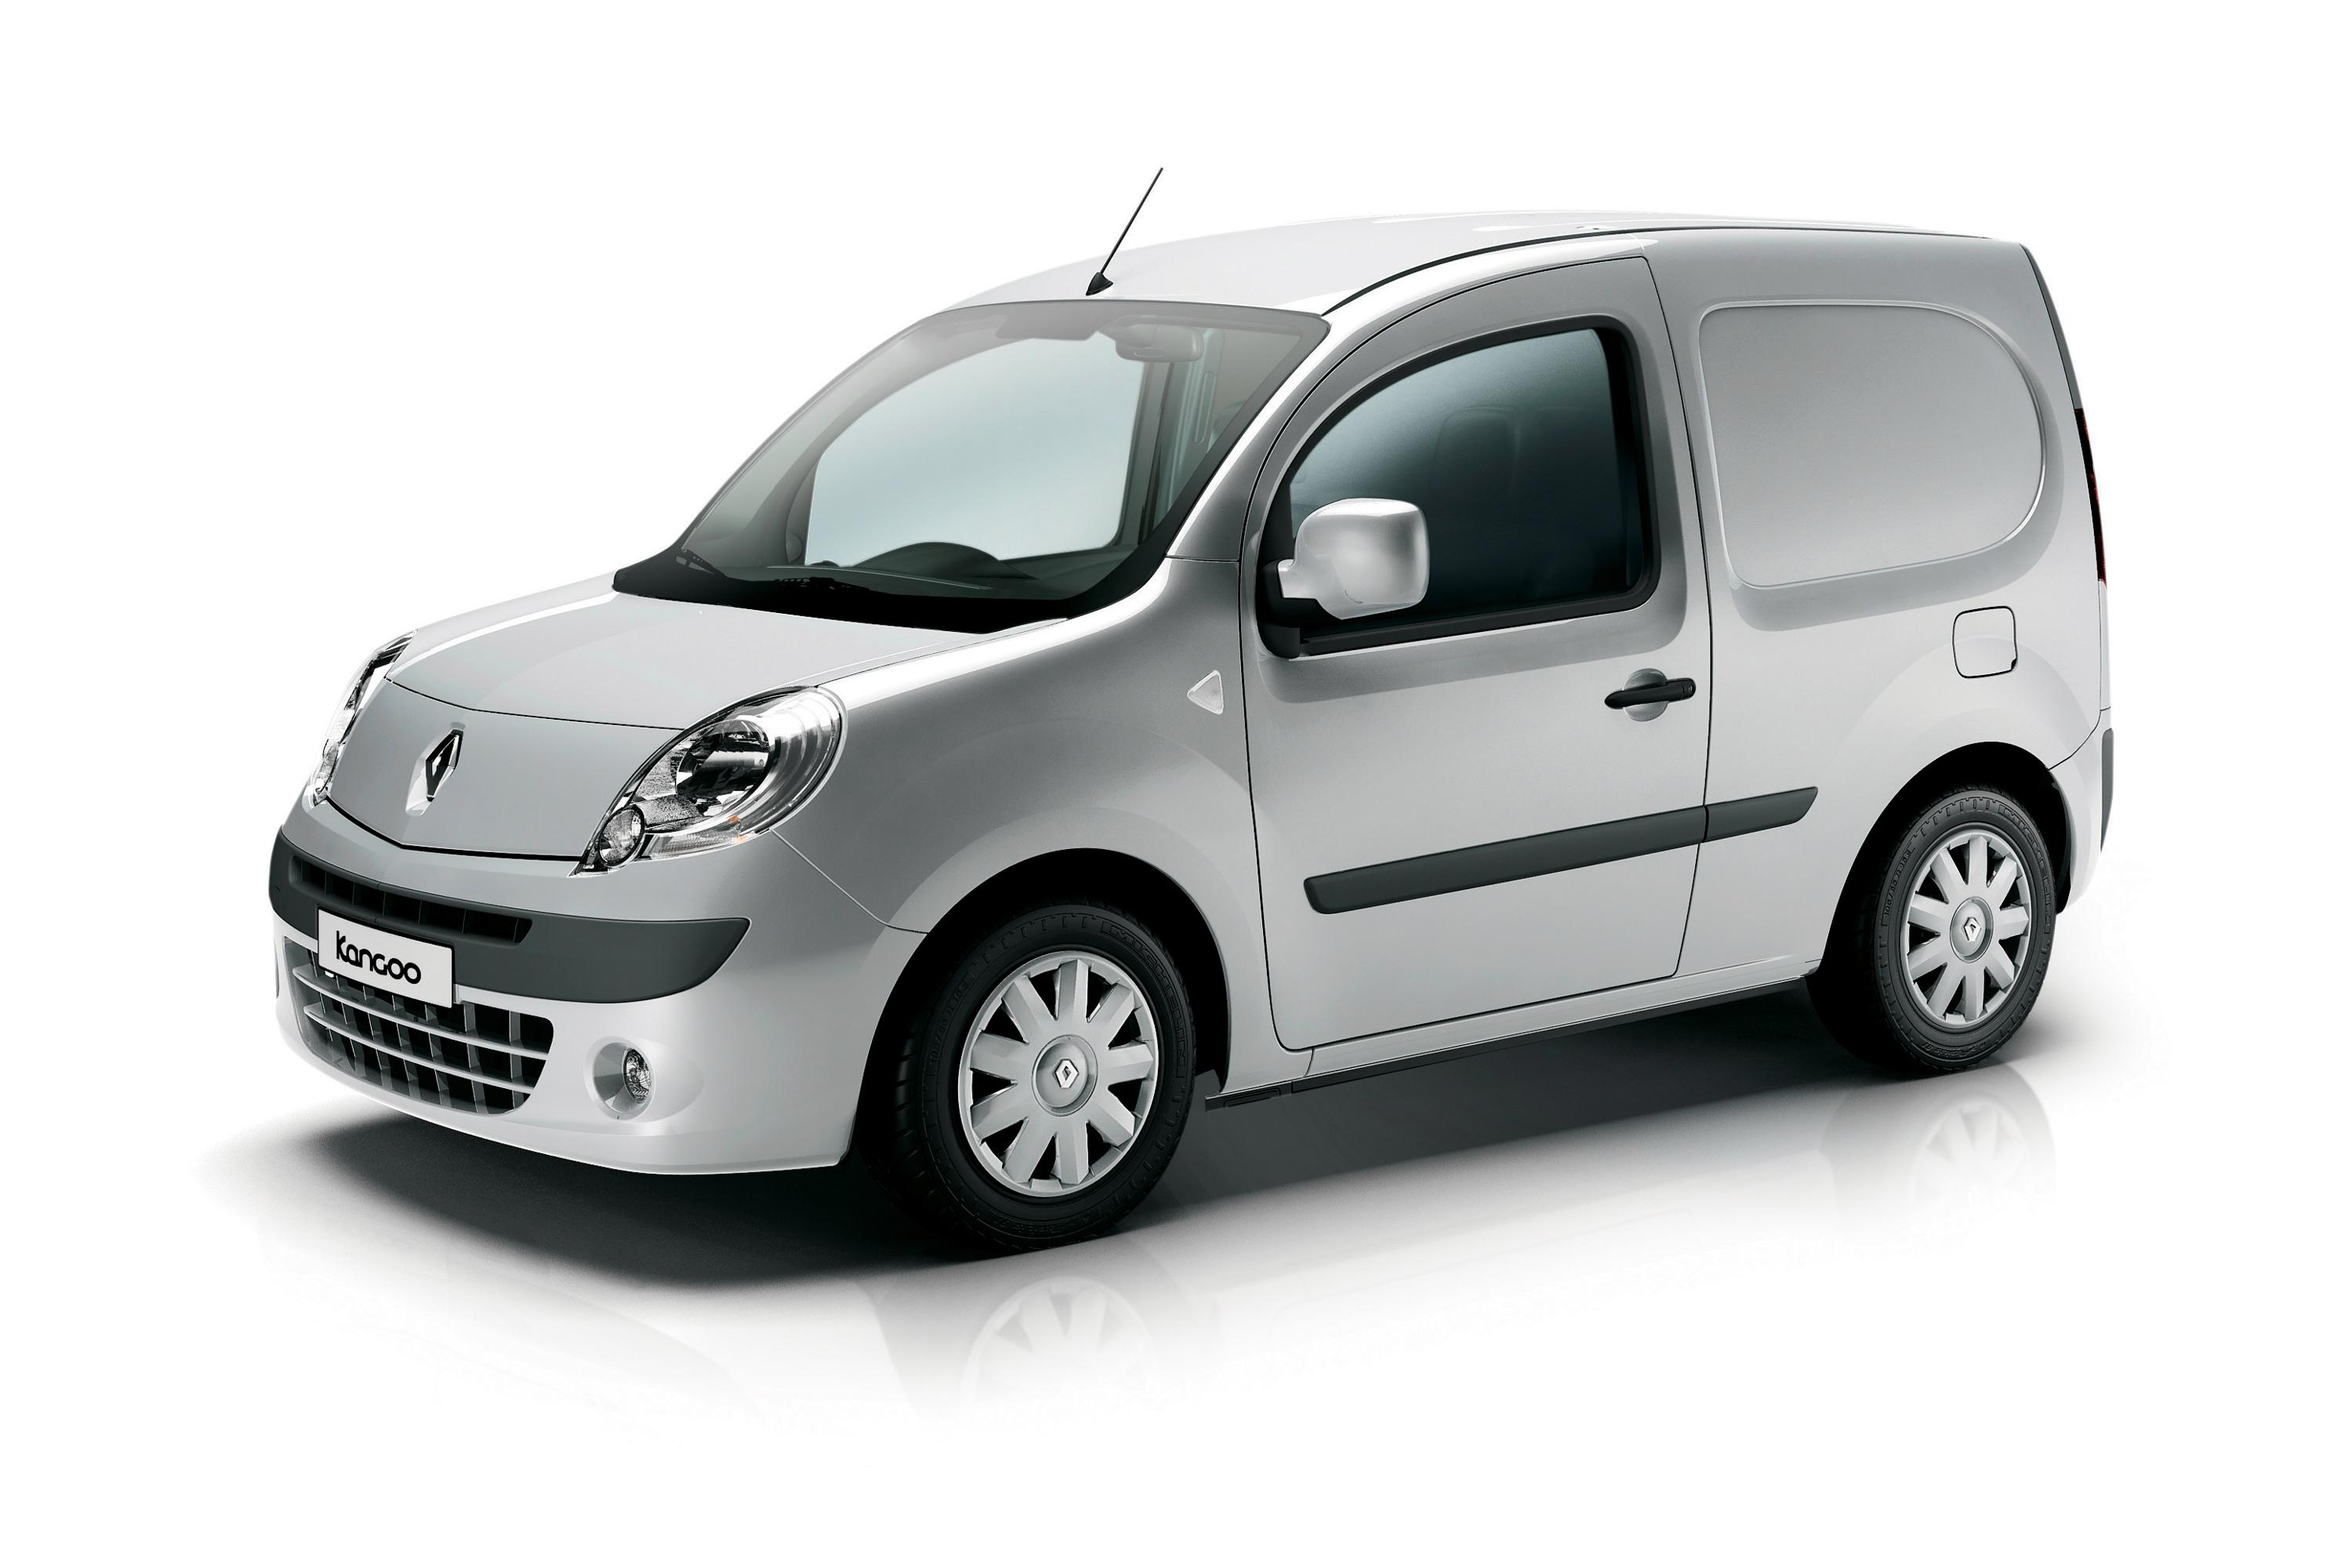 nouvelle renault kangoo express compact toutes les infos. Black Bedroom Furniture Sets. Home Design Ideas